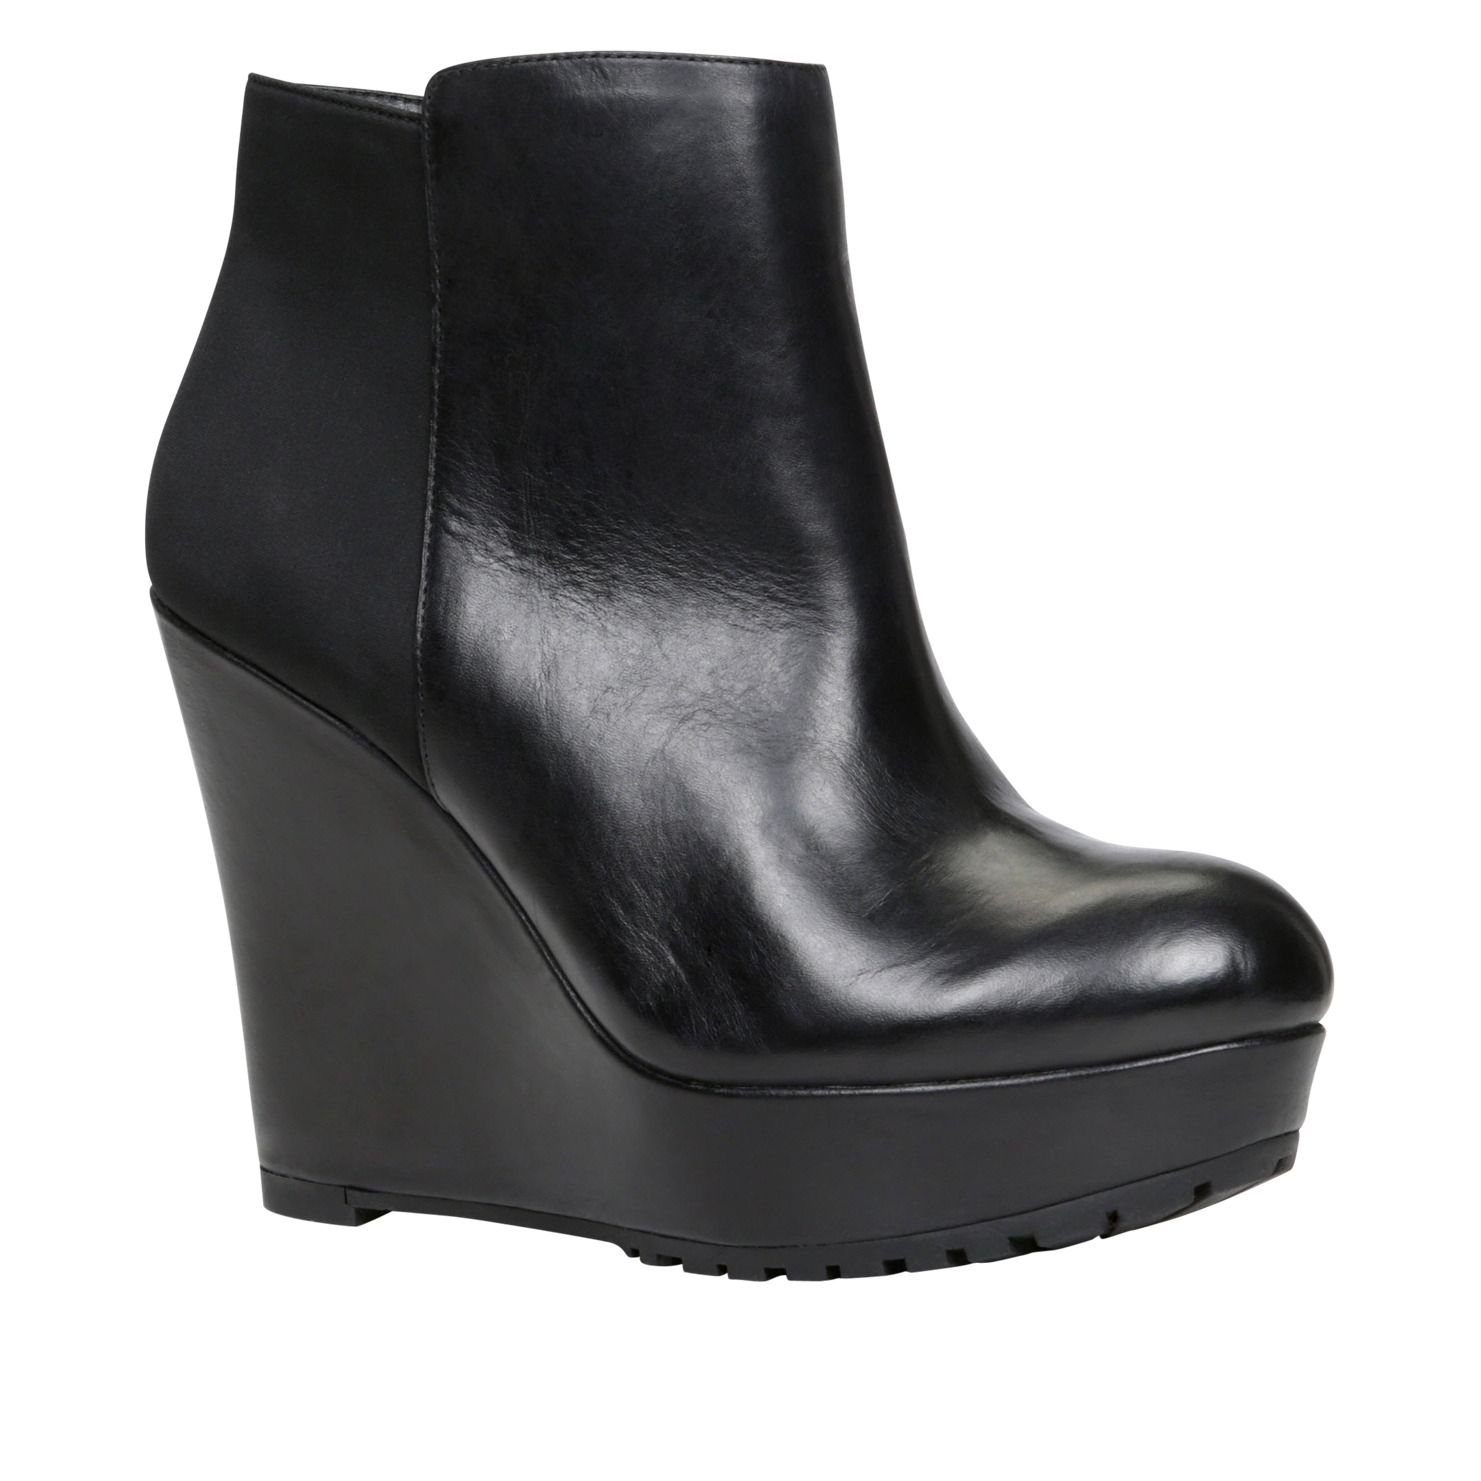 GUINEVIEVE - women's wedge boots boots for sale at ALDO Shoes.